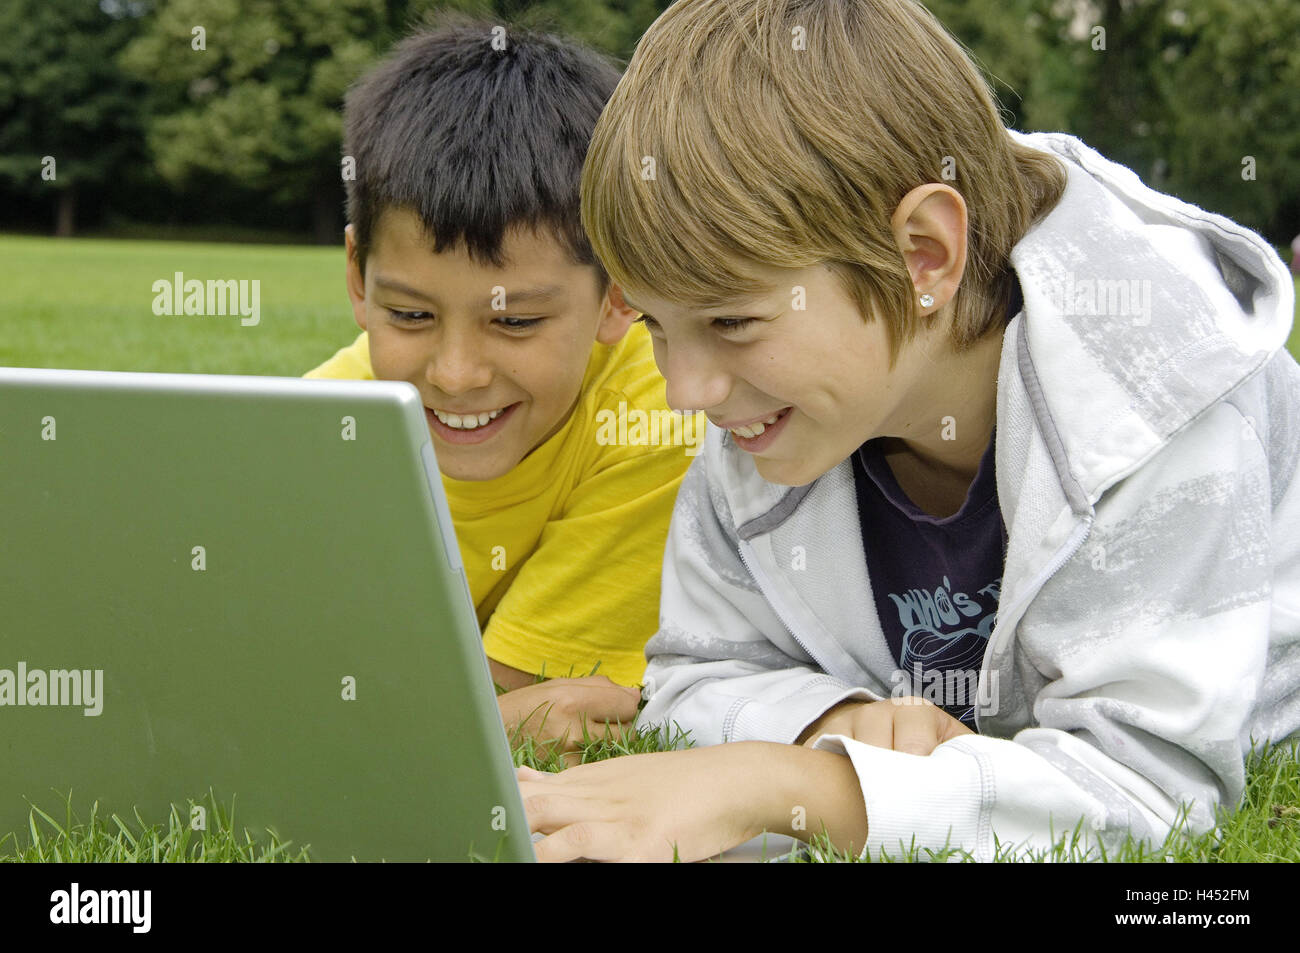 Boys, two, turfs, lie, play laptop, fun, model released, people, children, friends, learn, outside, together, meadow, - Stock Image